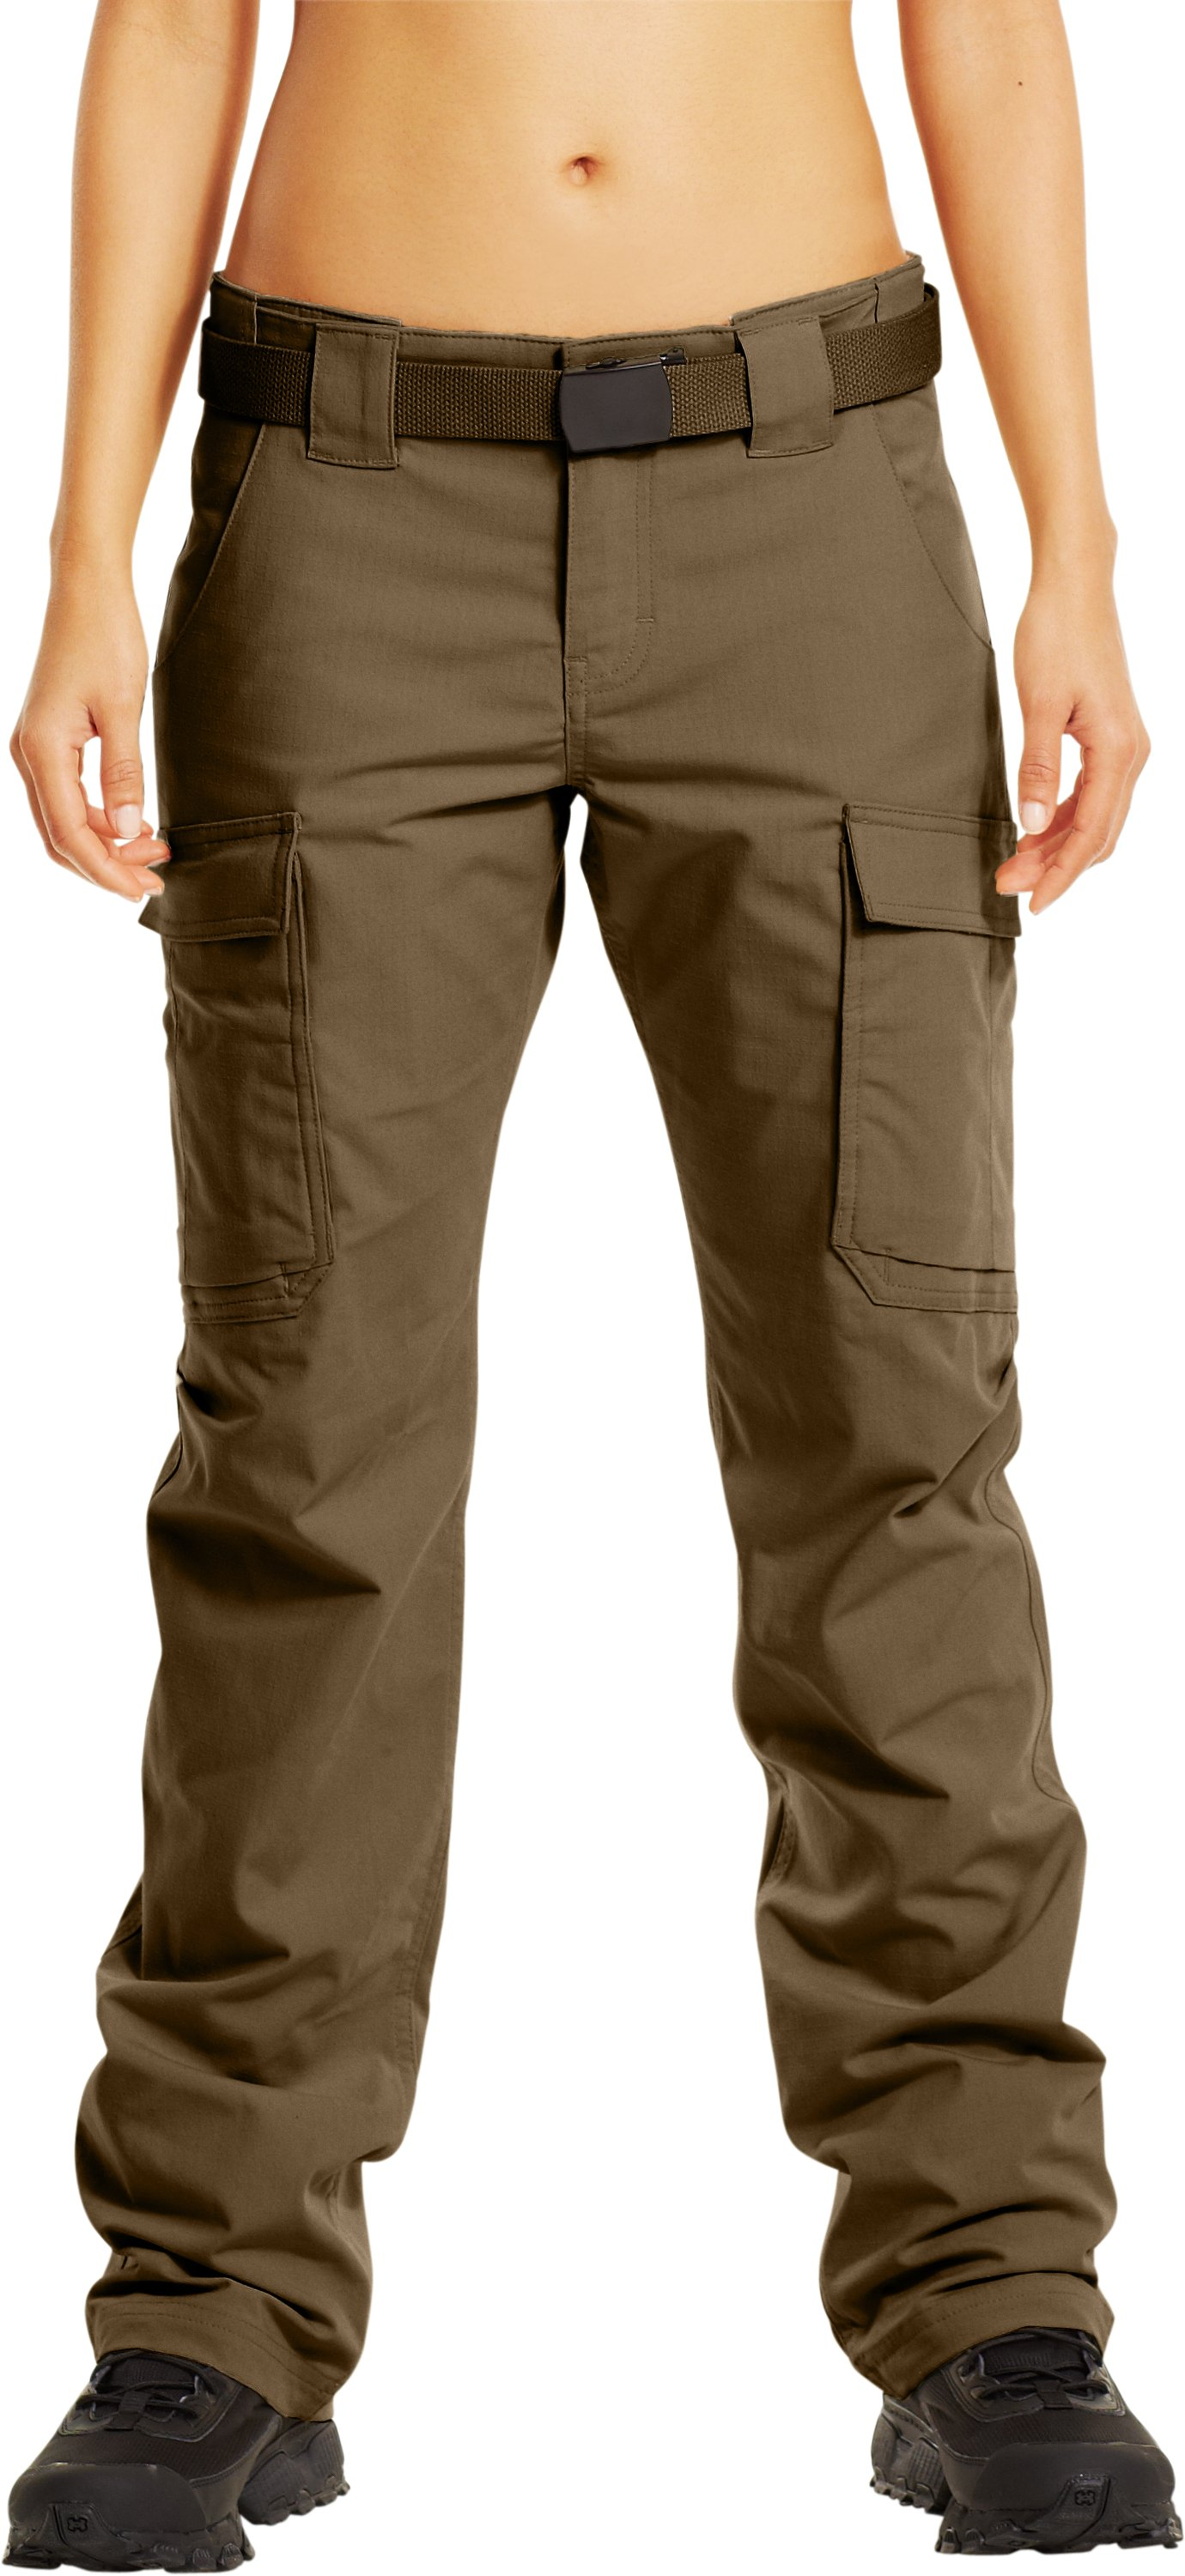 Women's Tactical Duty Pants, Coyote Brown